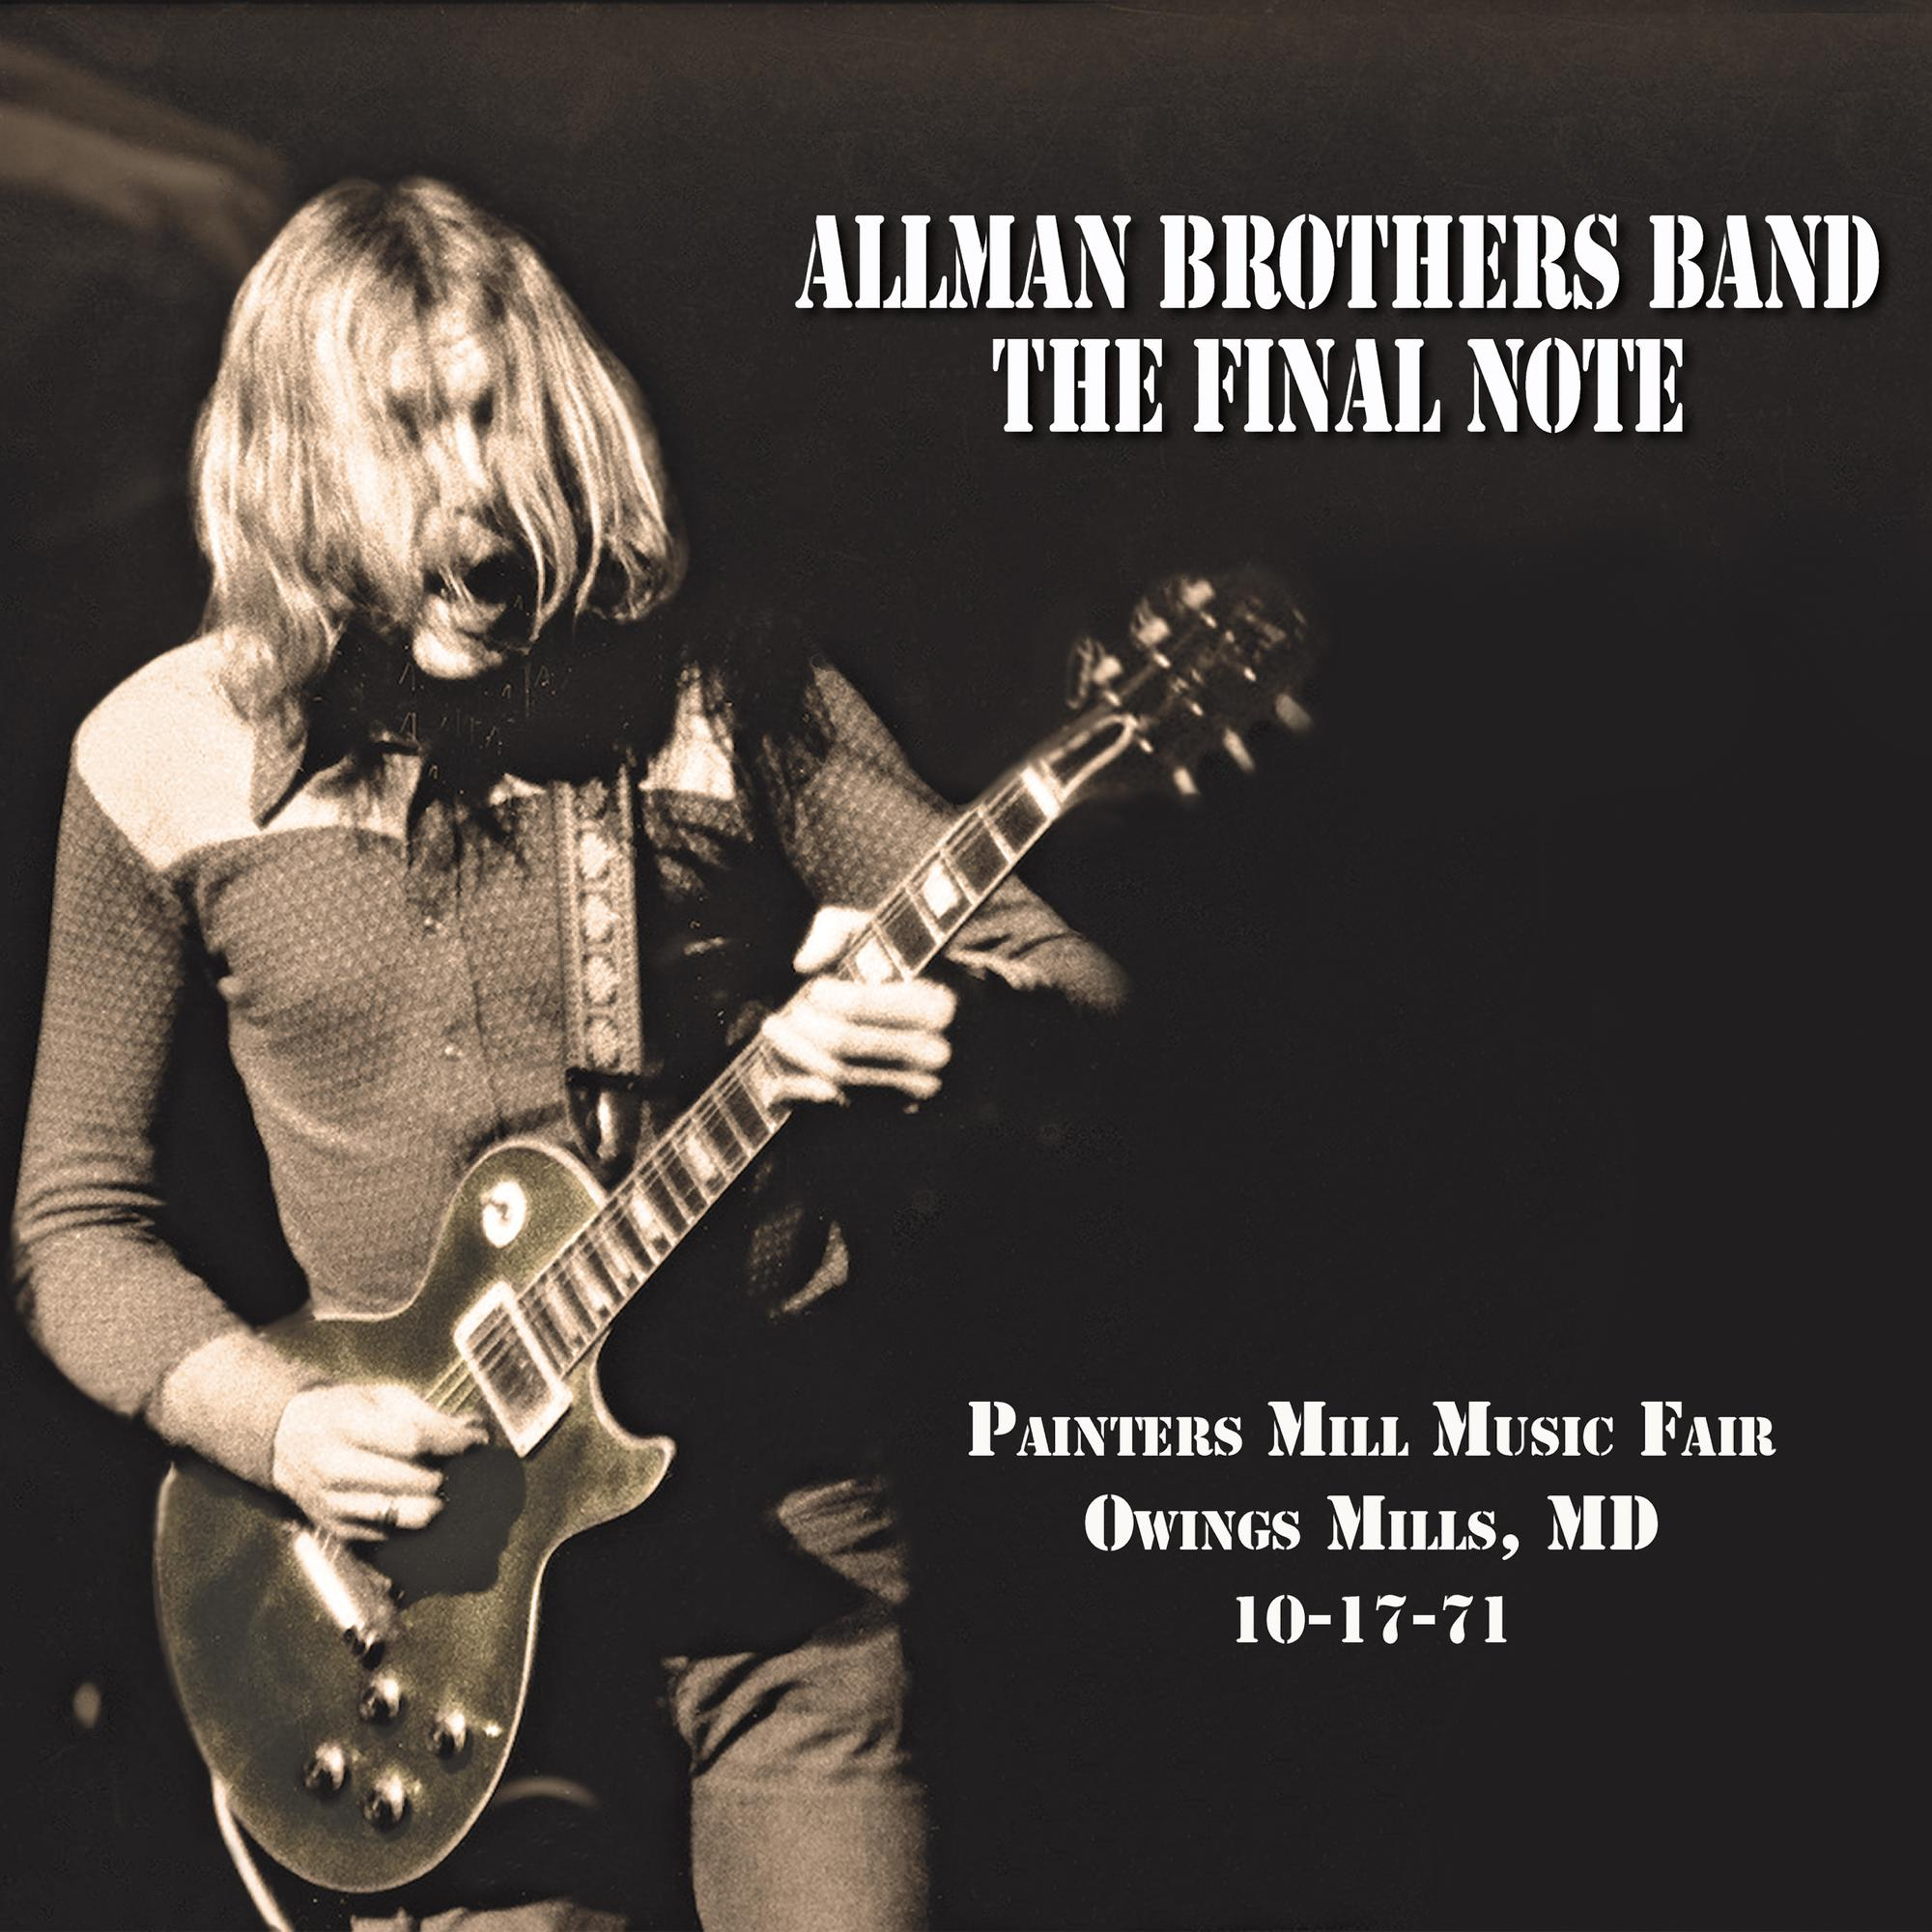 The Allman Brothers Band - The Final Note [RSD Drops 2021]